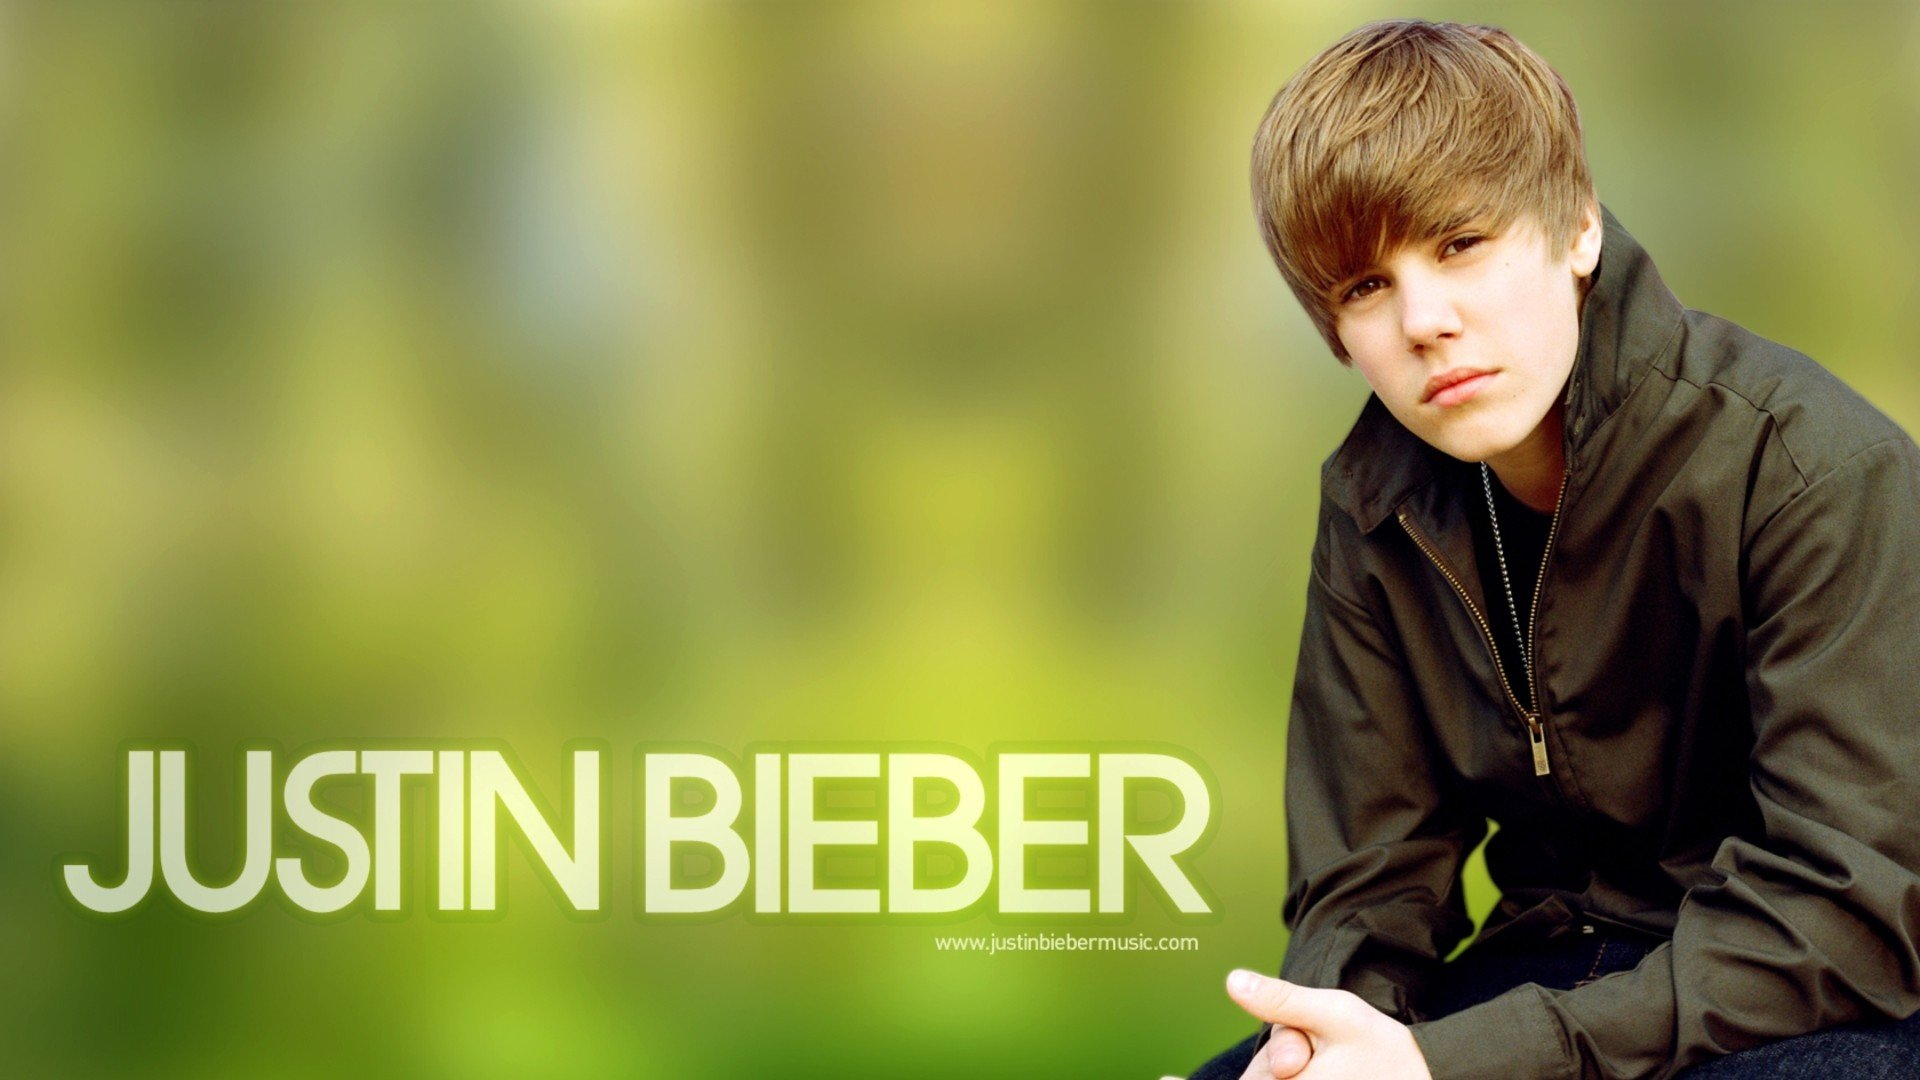 Free download Justin Bieber background ID:162402 hd 1920x1080 for computer